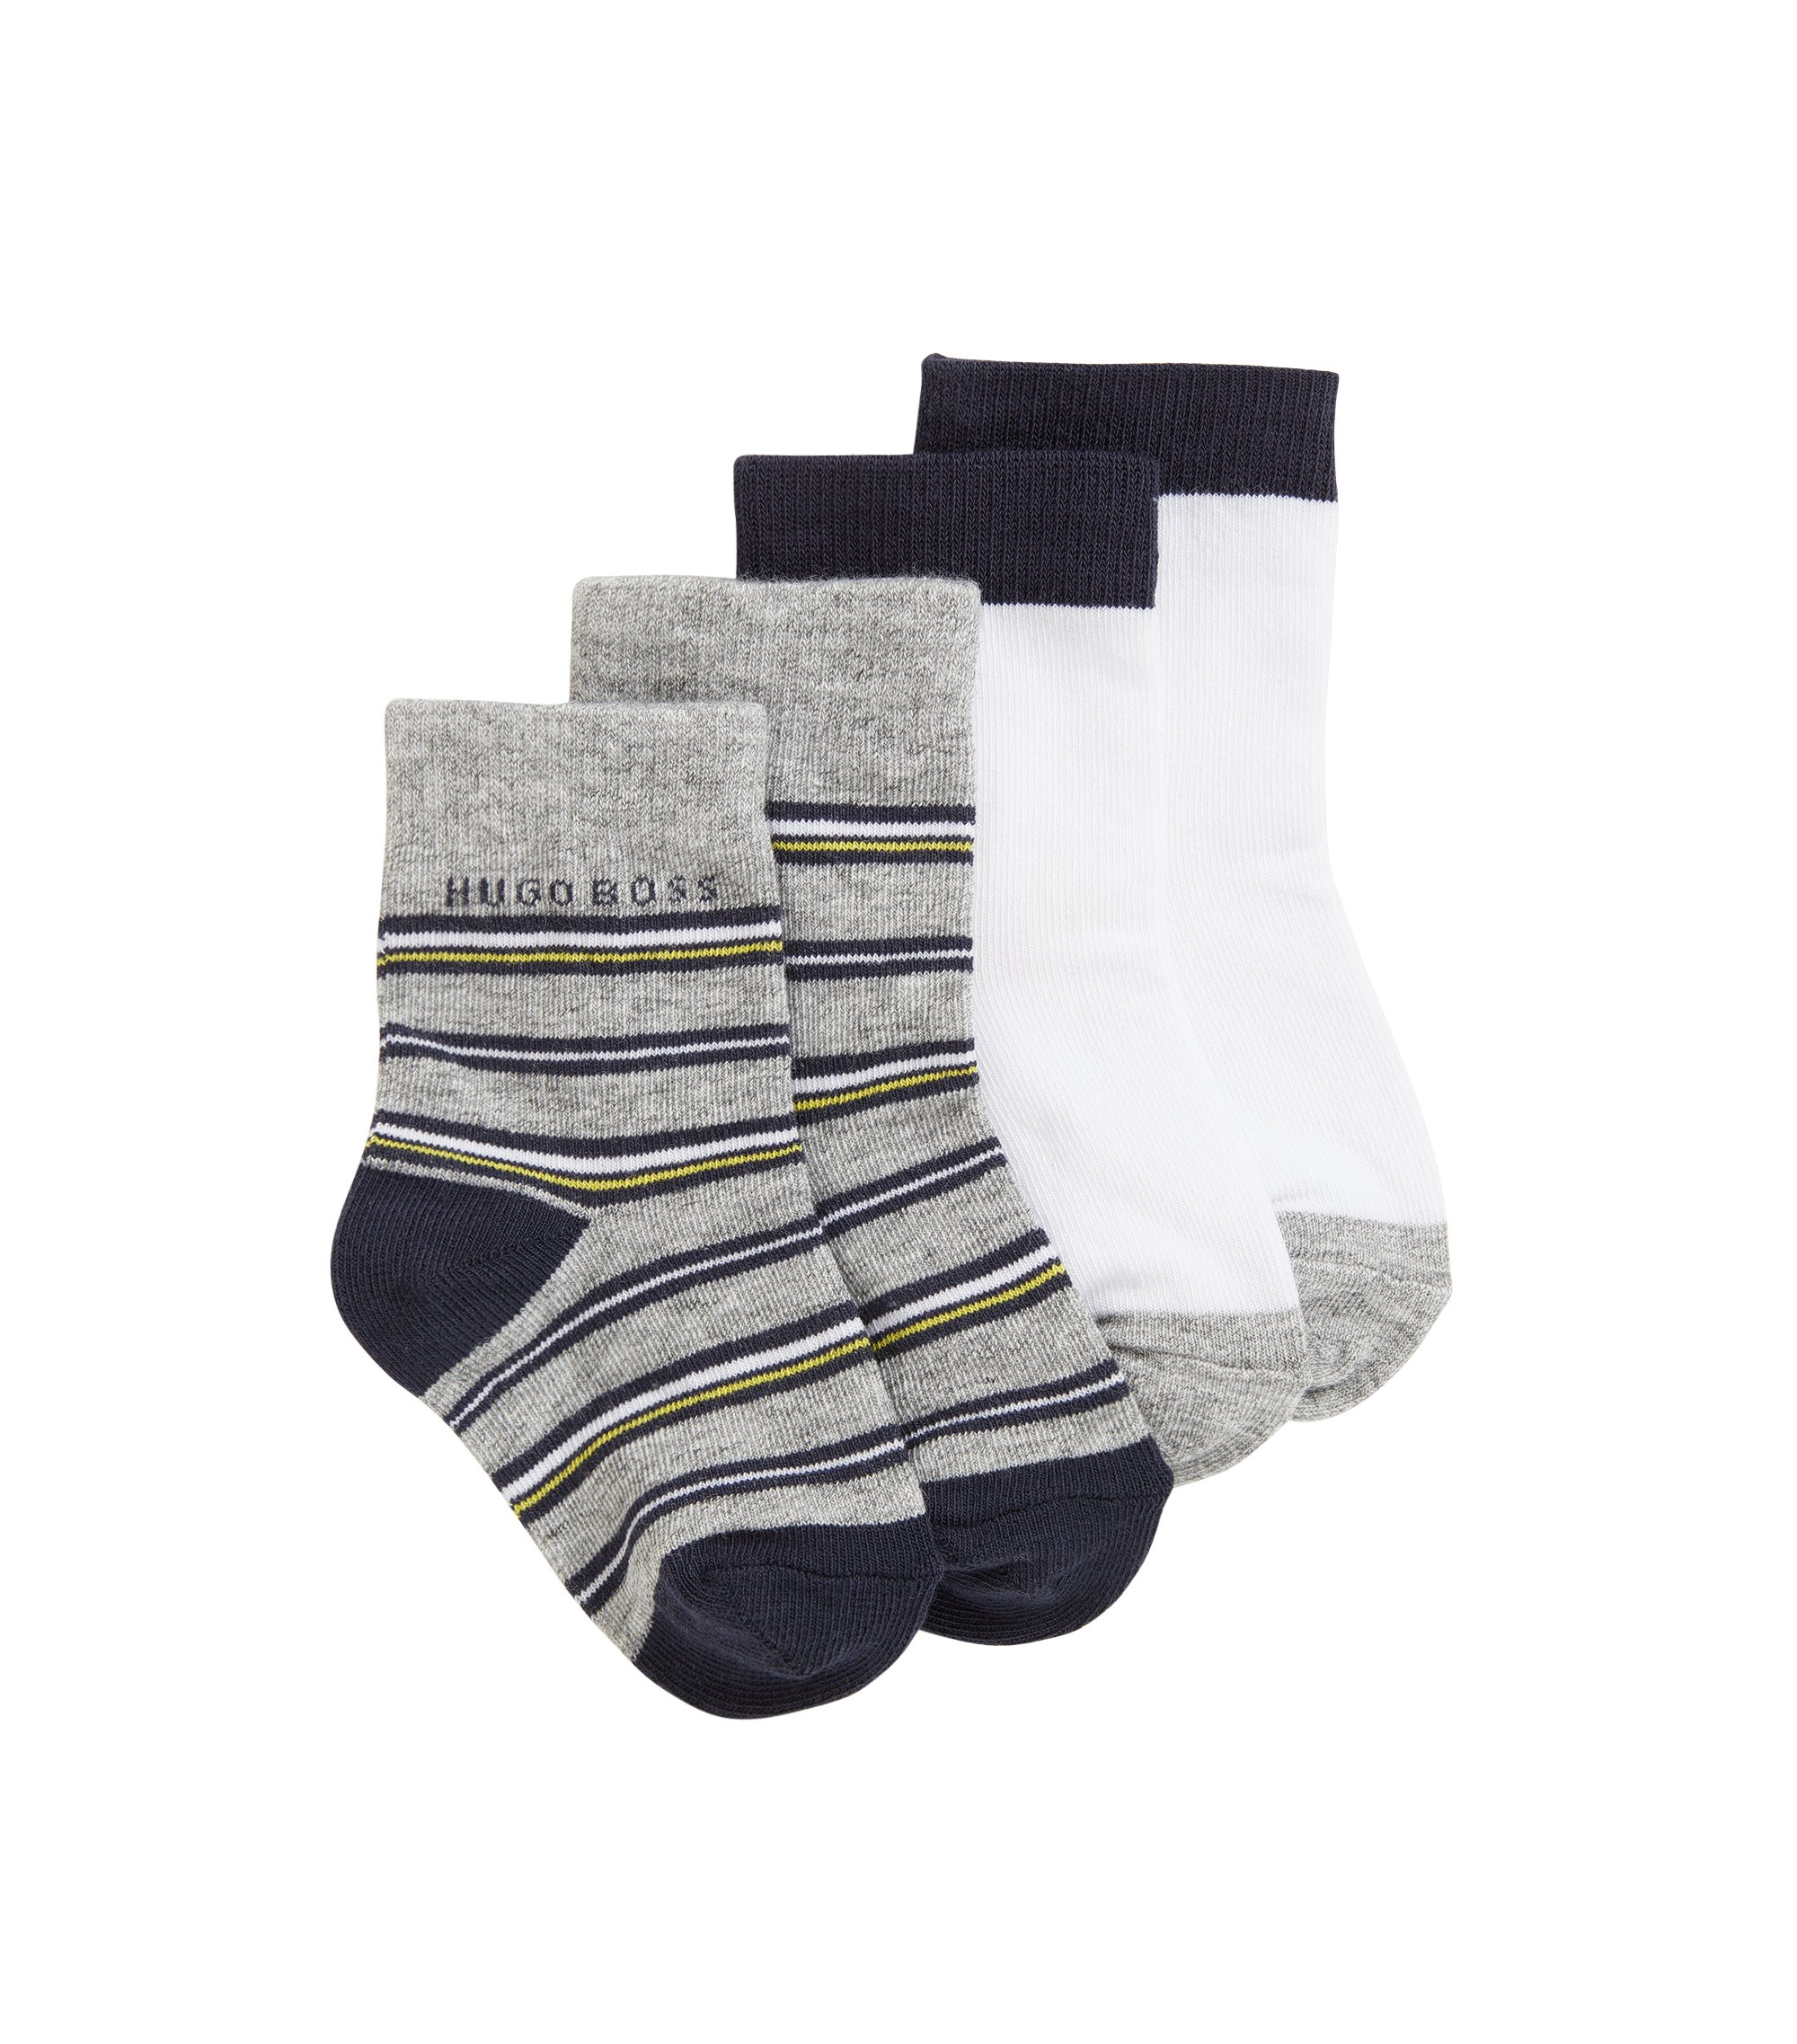 Kids' two-pack of socks in stretch cotton-blend jacquard, Patterned